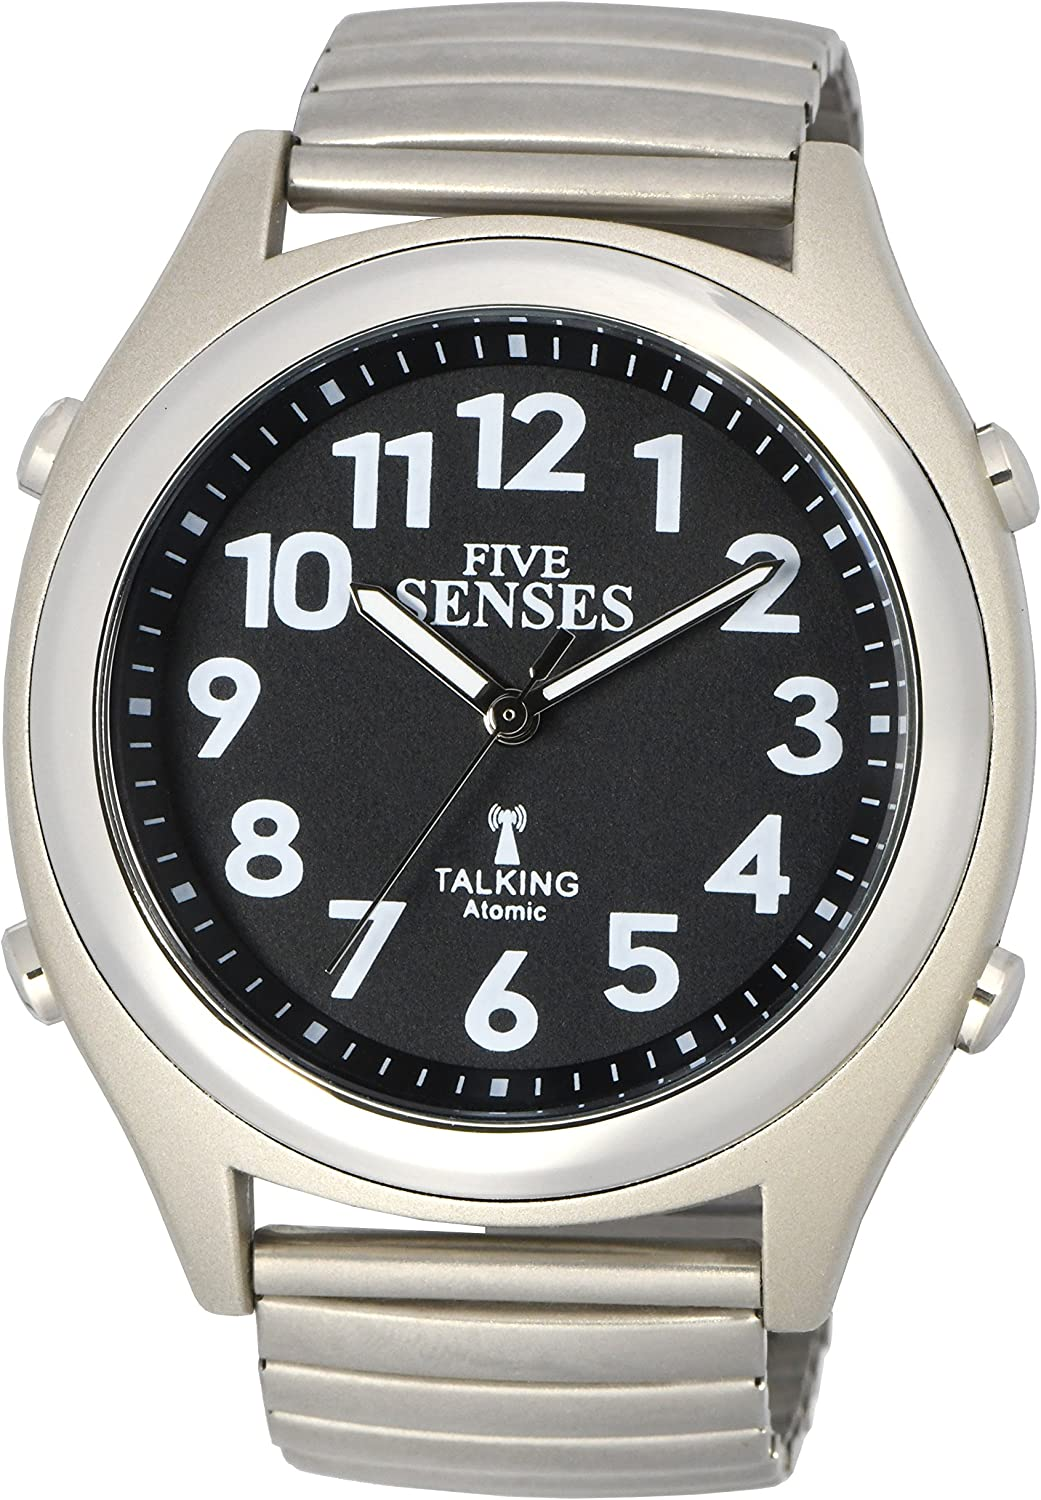 Amazon.com: Atomic! Talking Watch - Sets Itself FIVE SENSES Unisex Talking  Watch 1100: Watches